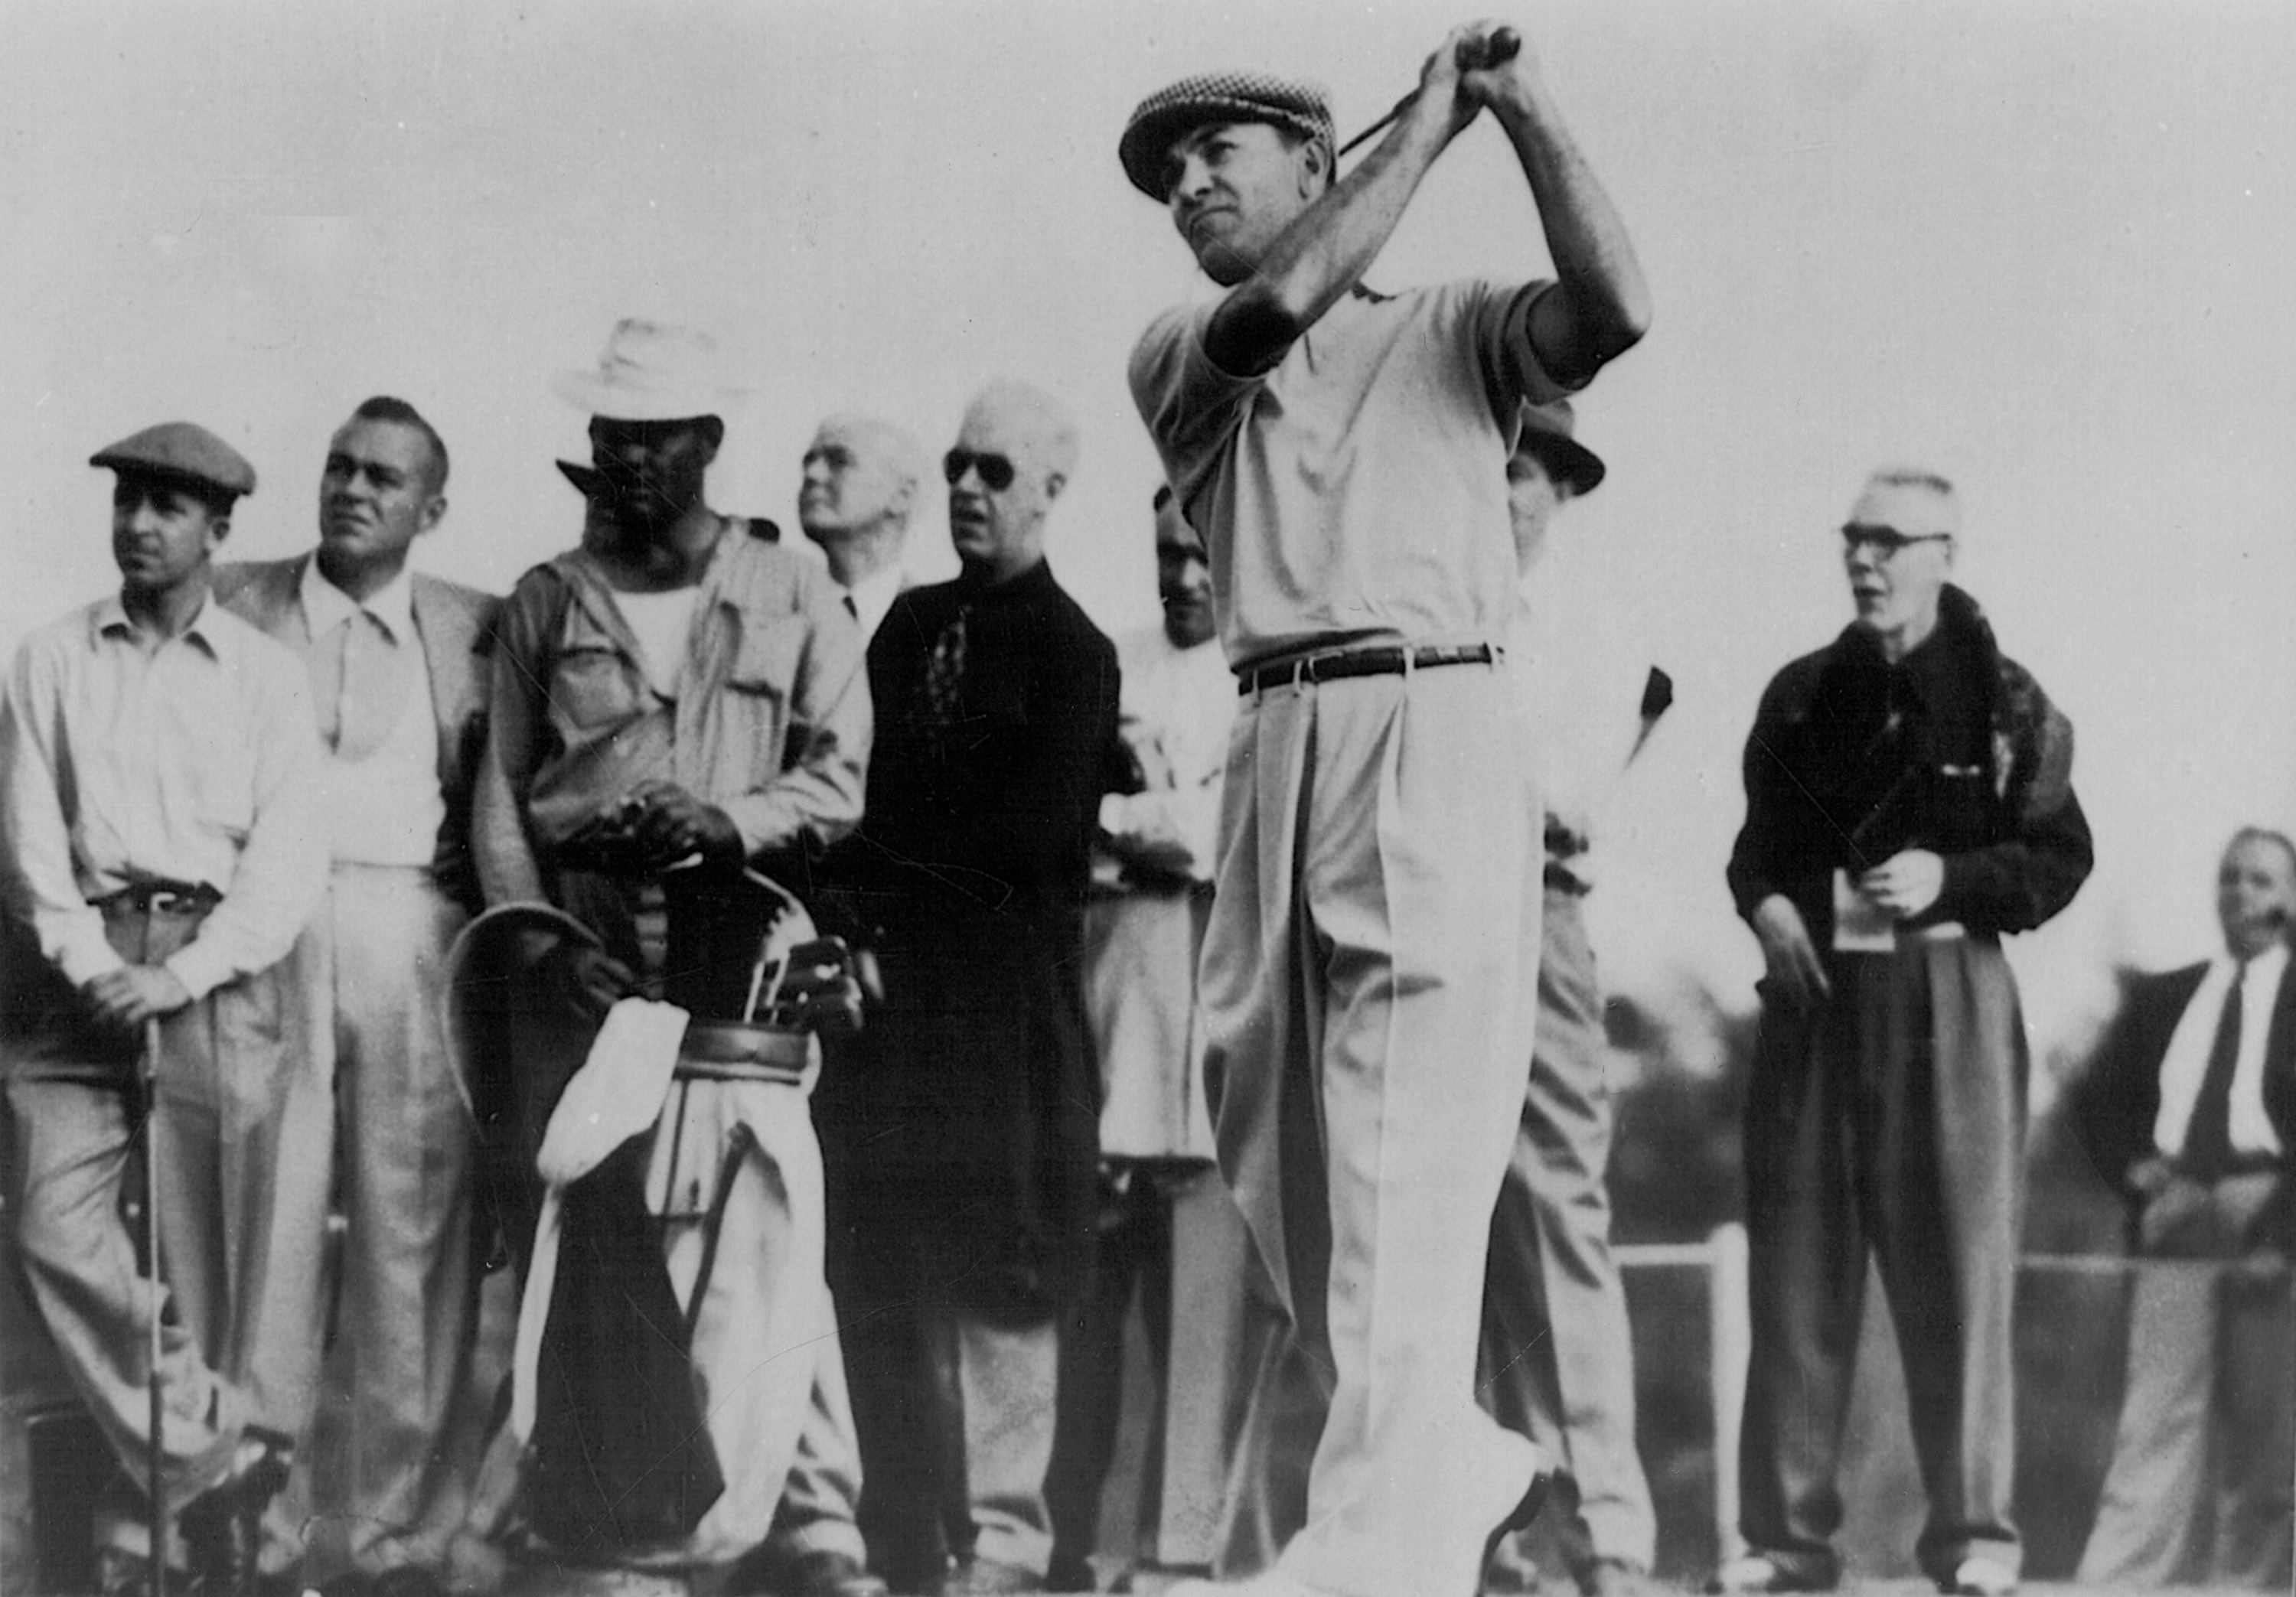 After toiling on tour for seven years without a victory, Ben Hogan finally broke through at the 1940 North & South Open at Pinehurst. The rest - as they say - is history.